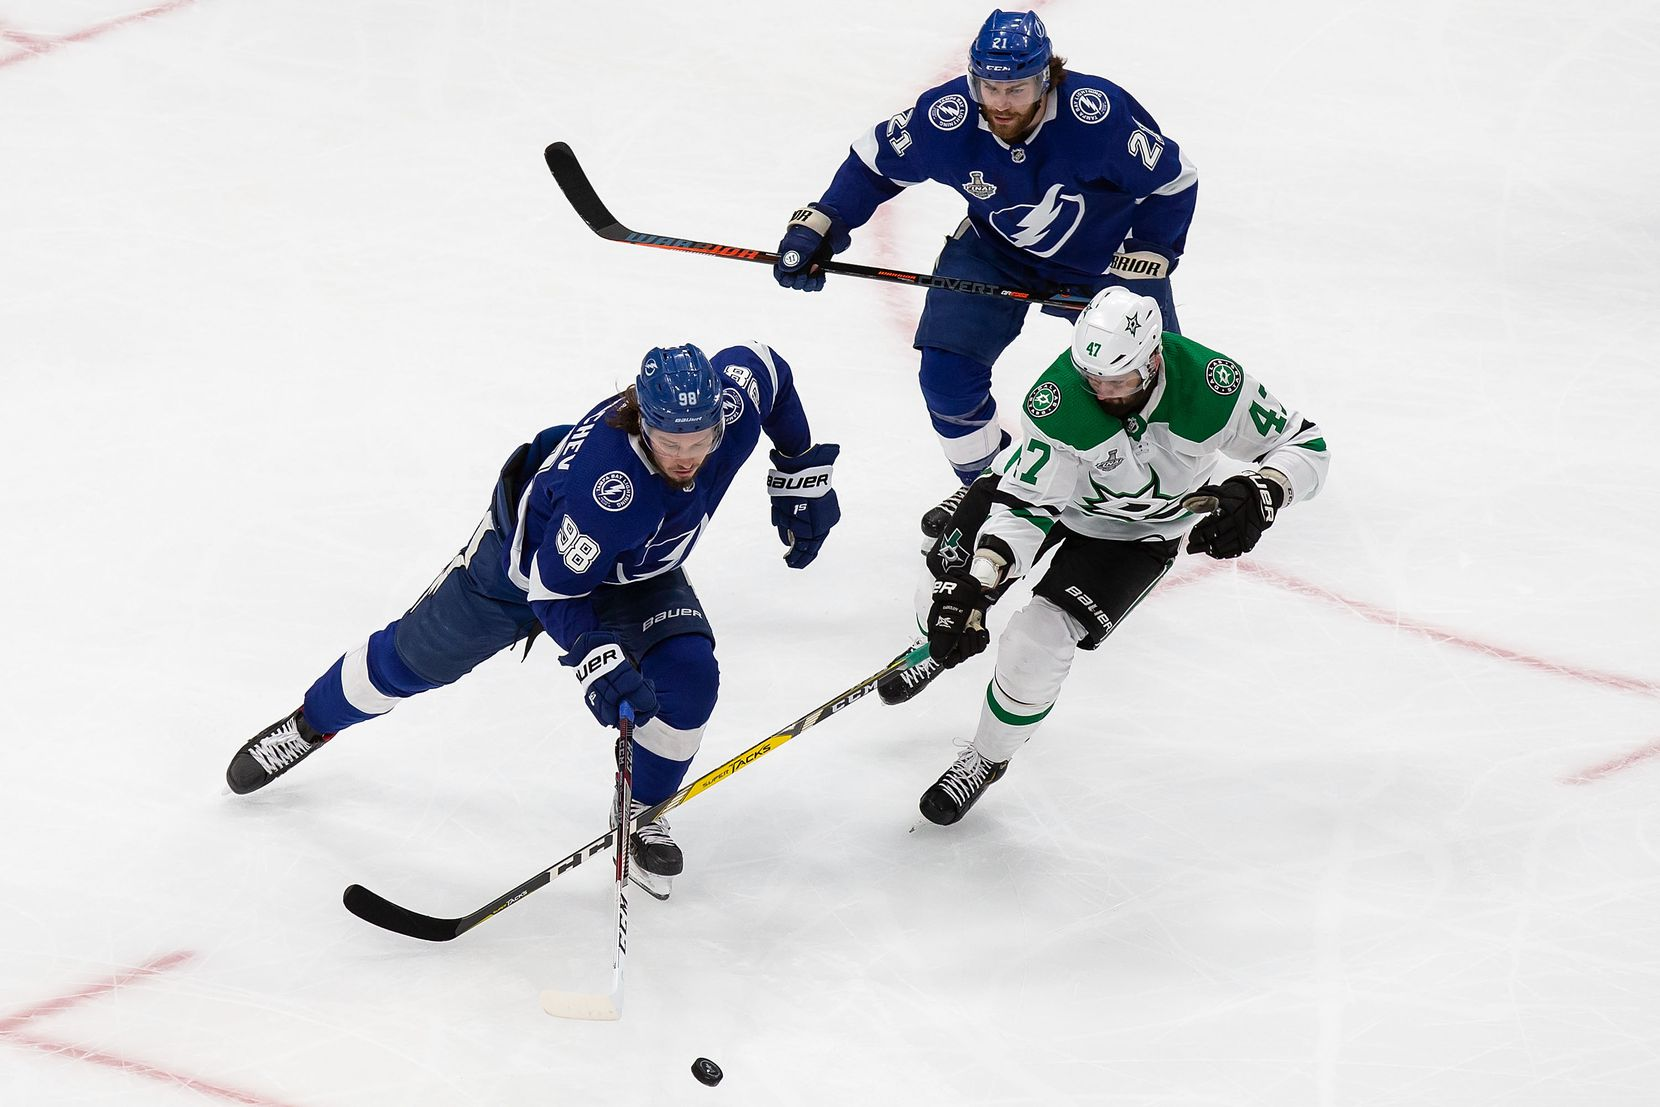 Alexander Radulov (47) of the Dallas Stars battles against Mikhail Sergachev (98) of the Tampa Bay Lightning during Game Two of the Stanley Cup Final at Rogers Place in Edmonton, Alberta, Canada on Monday, September 21, 2020. (Codie McLachlan/Special Contributor)